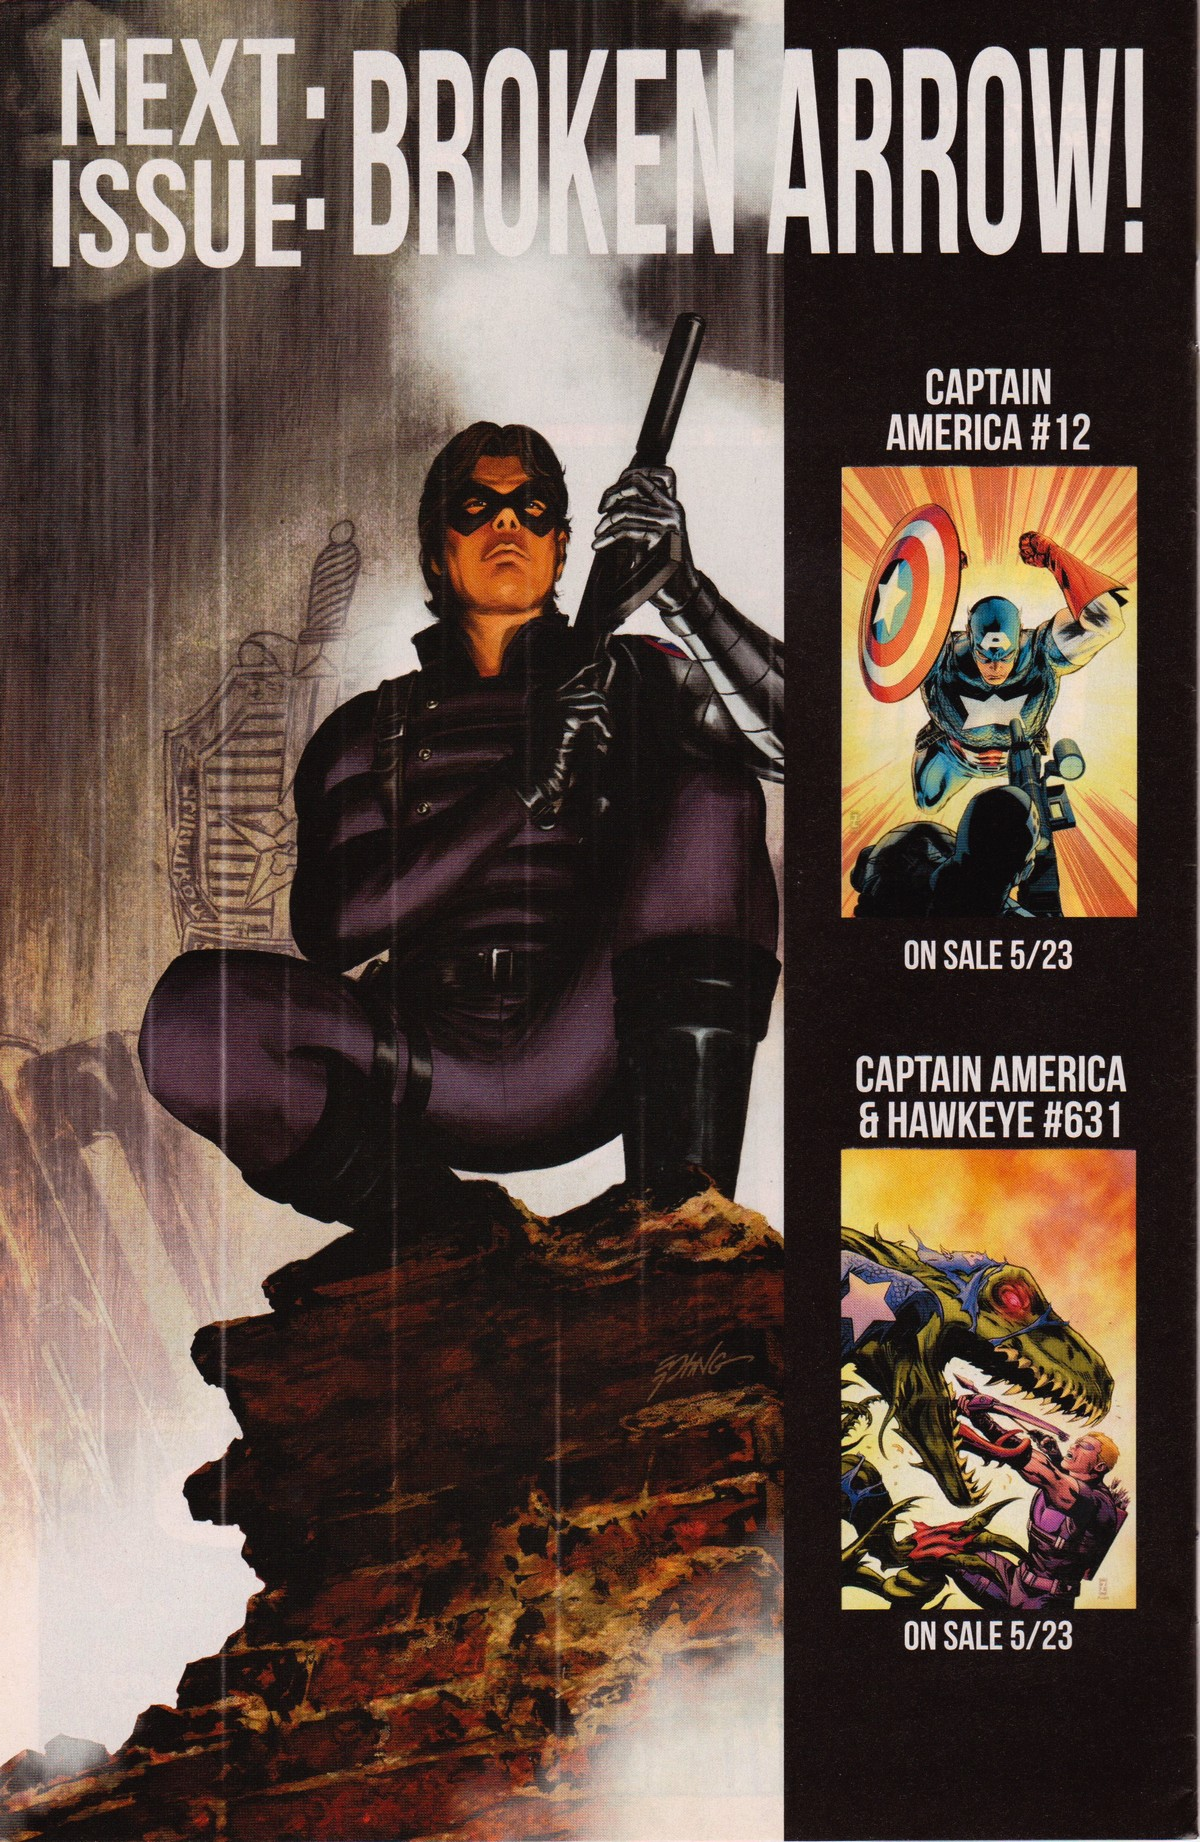 Read Up On Marvel Comics Winter Soldier @ The Thought Balloon